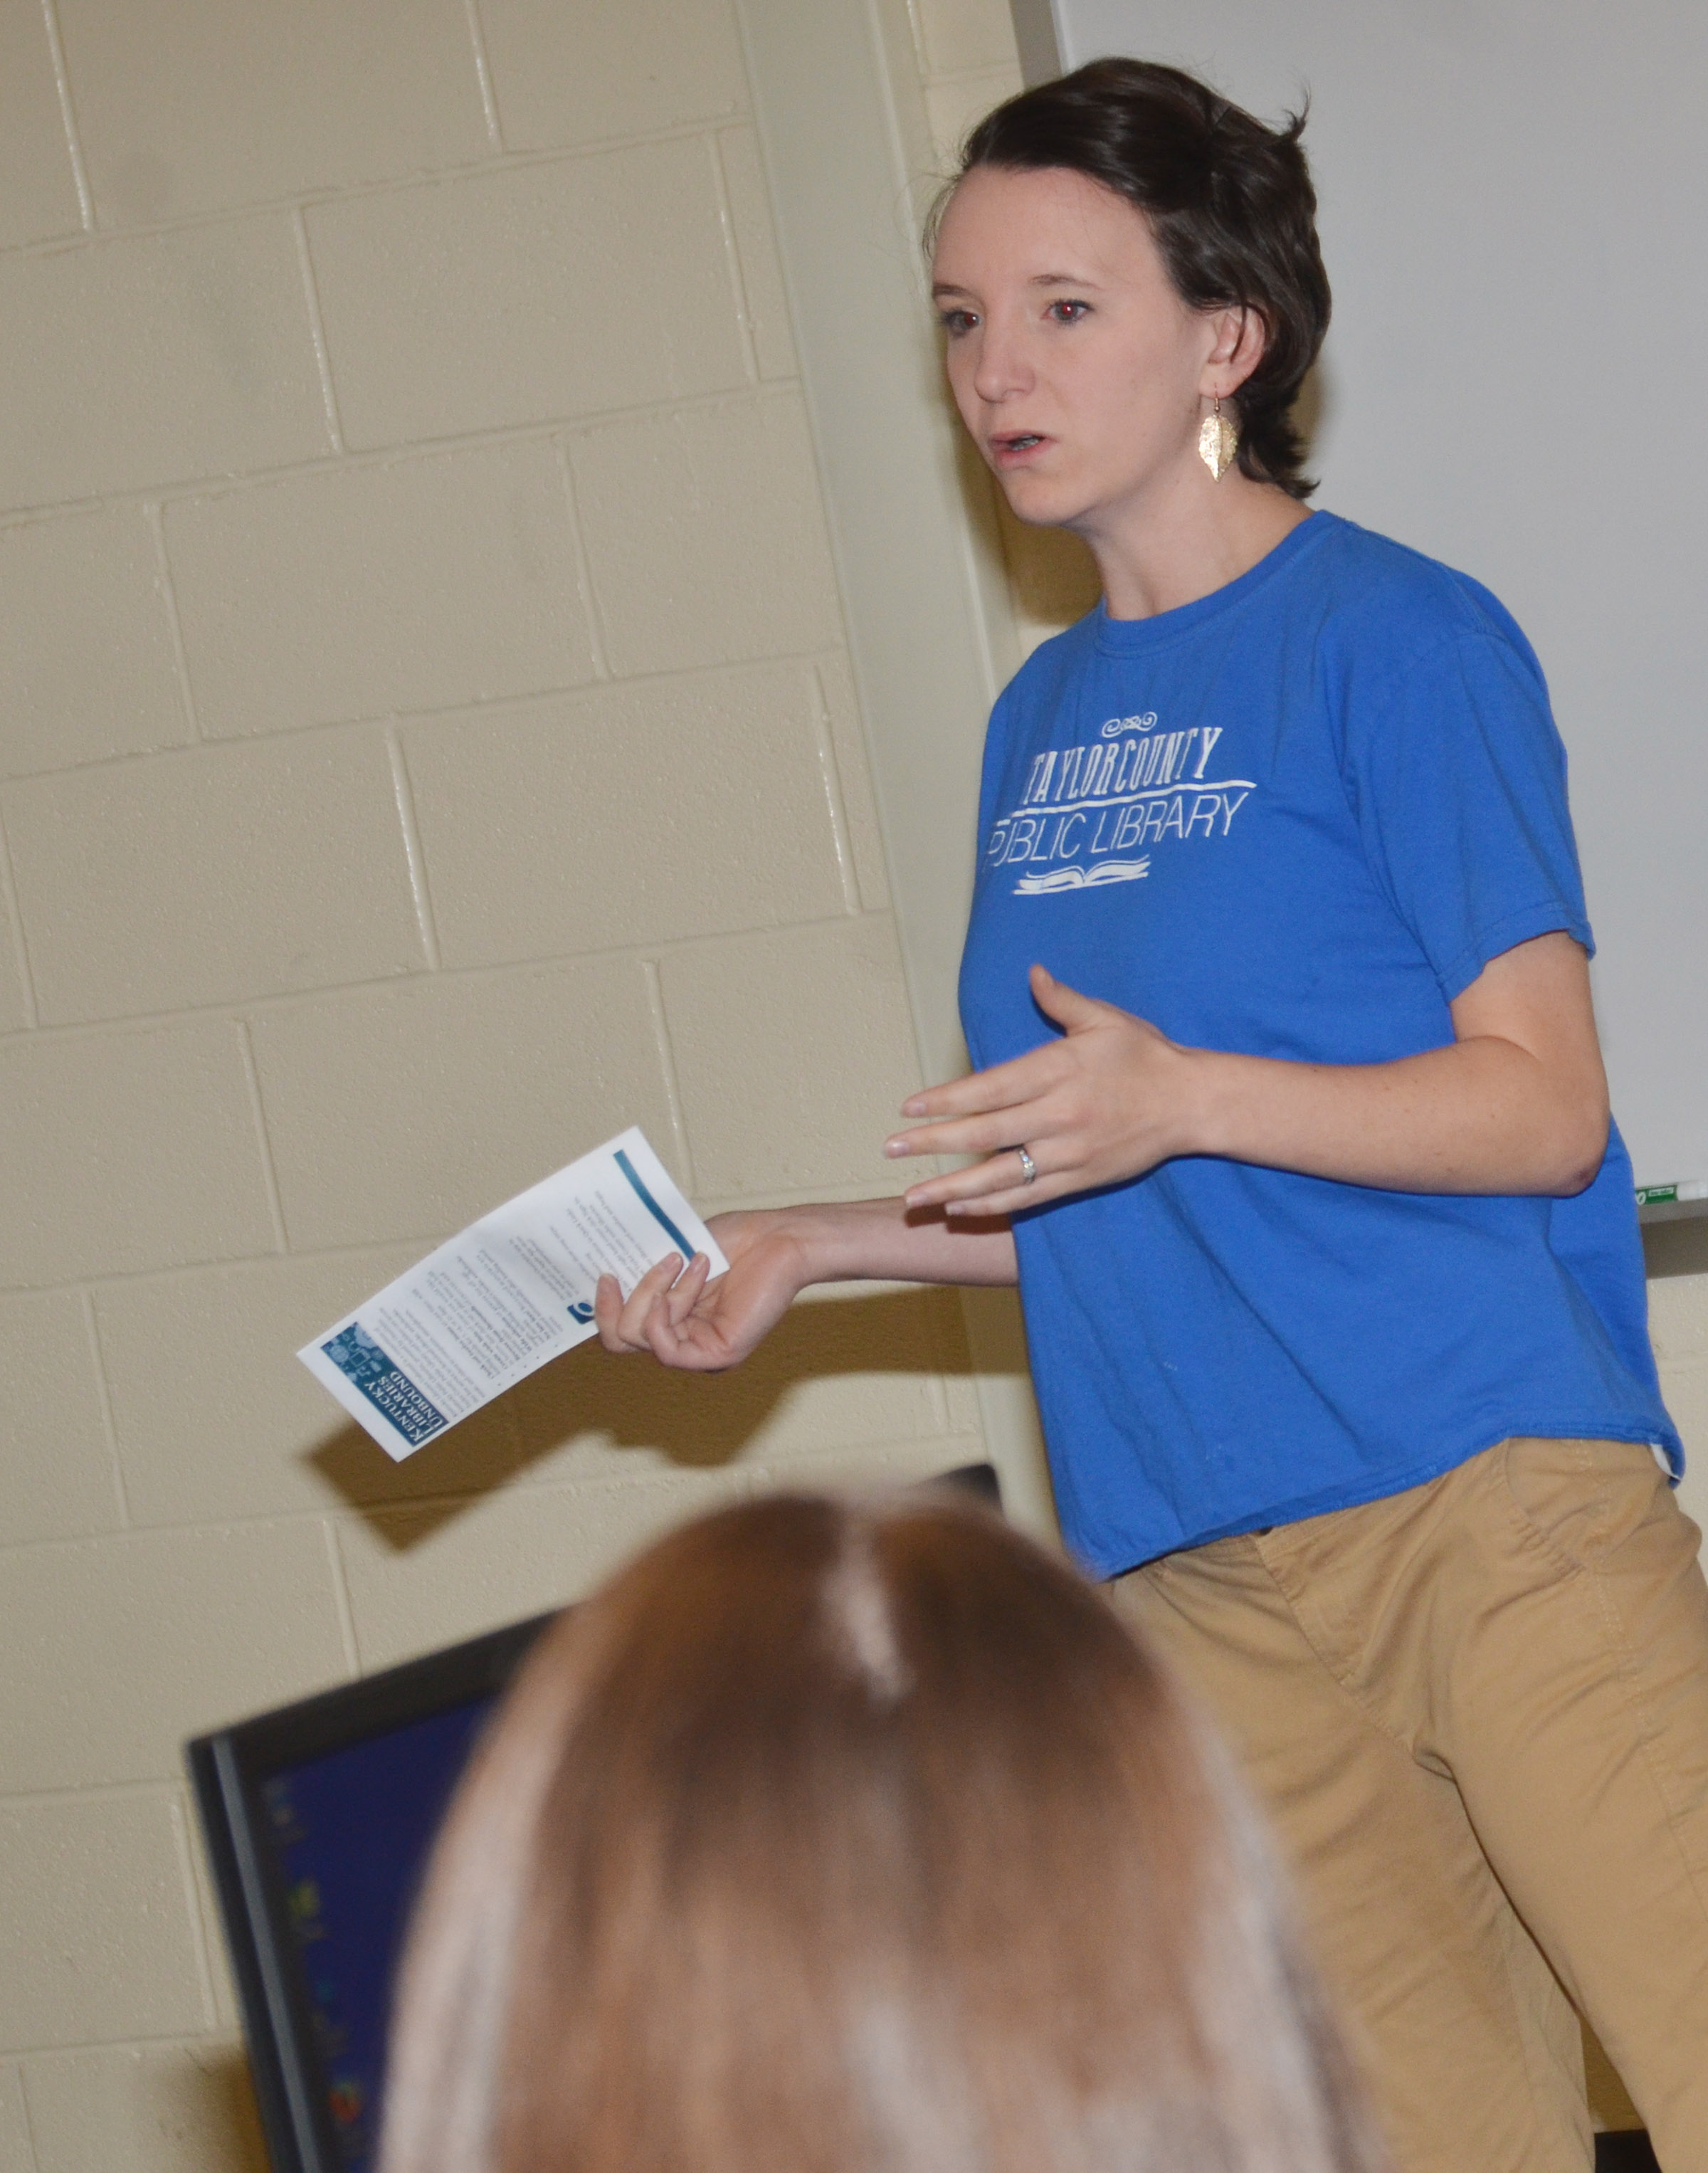 Kelsie Pepper of Taylor County Public Library talks to CHS students about the free digital services the library provides.